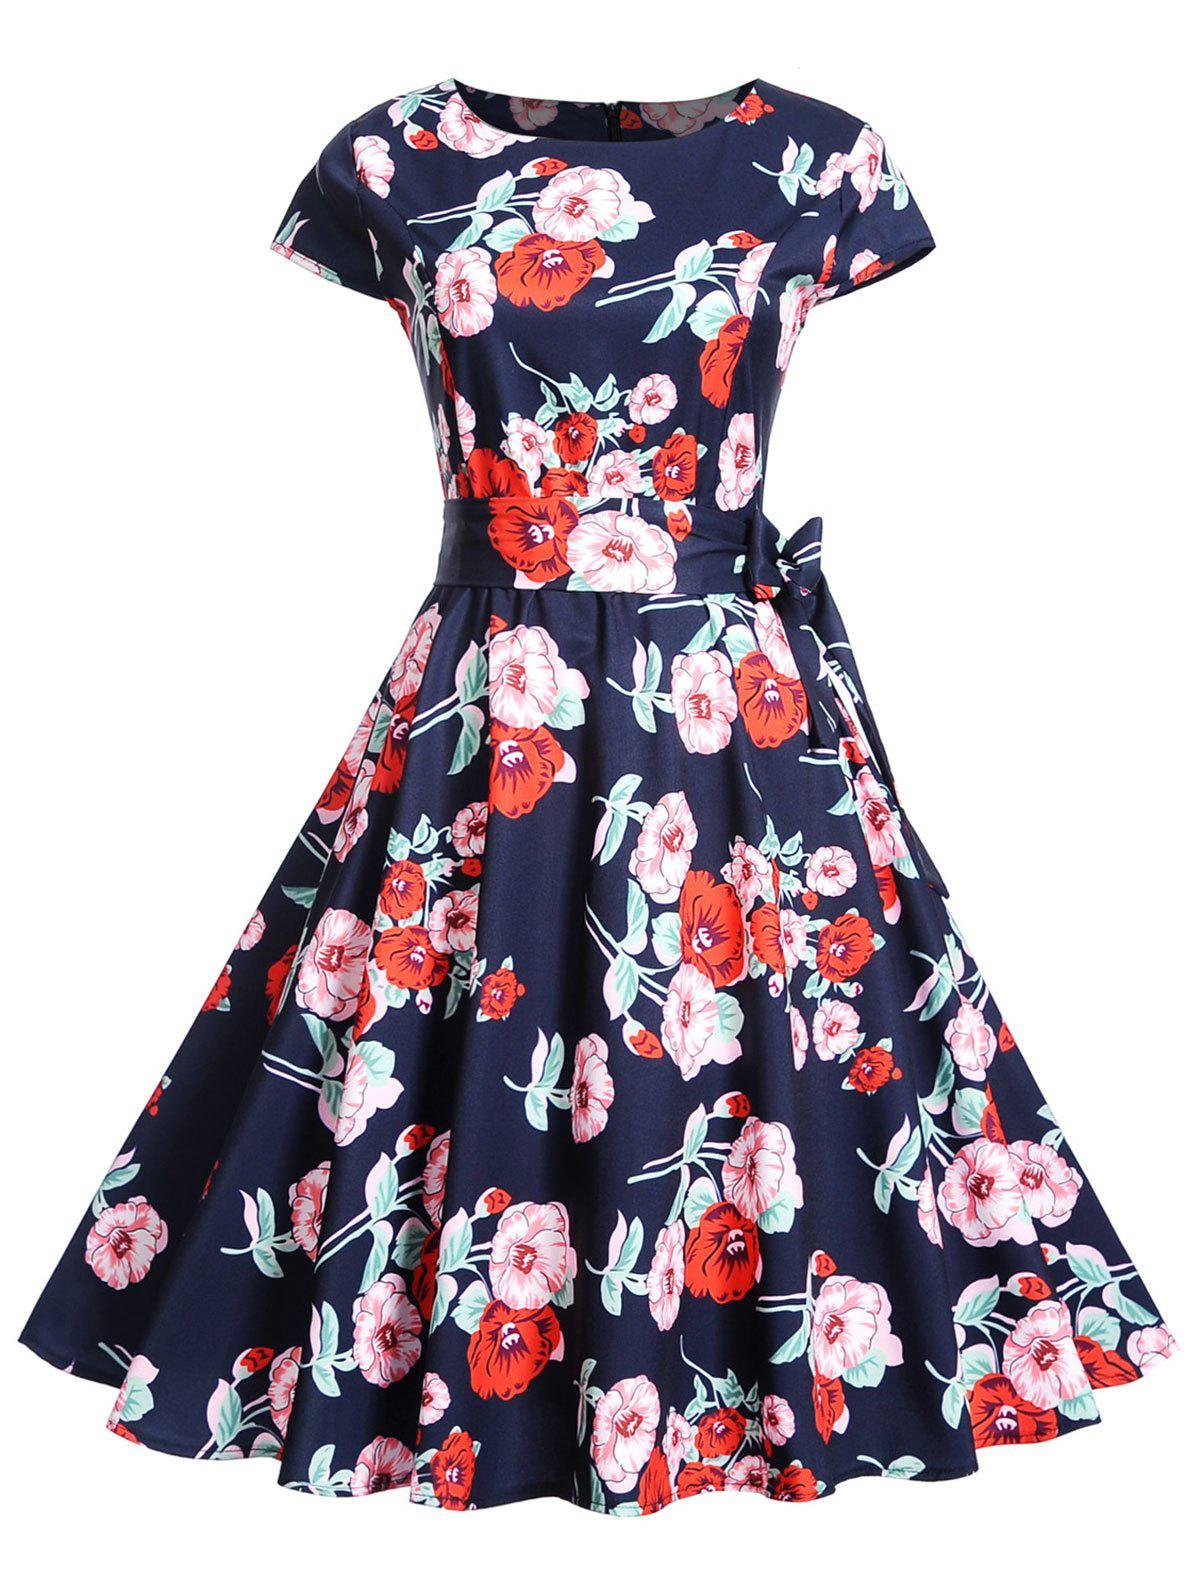 Retro Floral Belted 1950s Dress